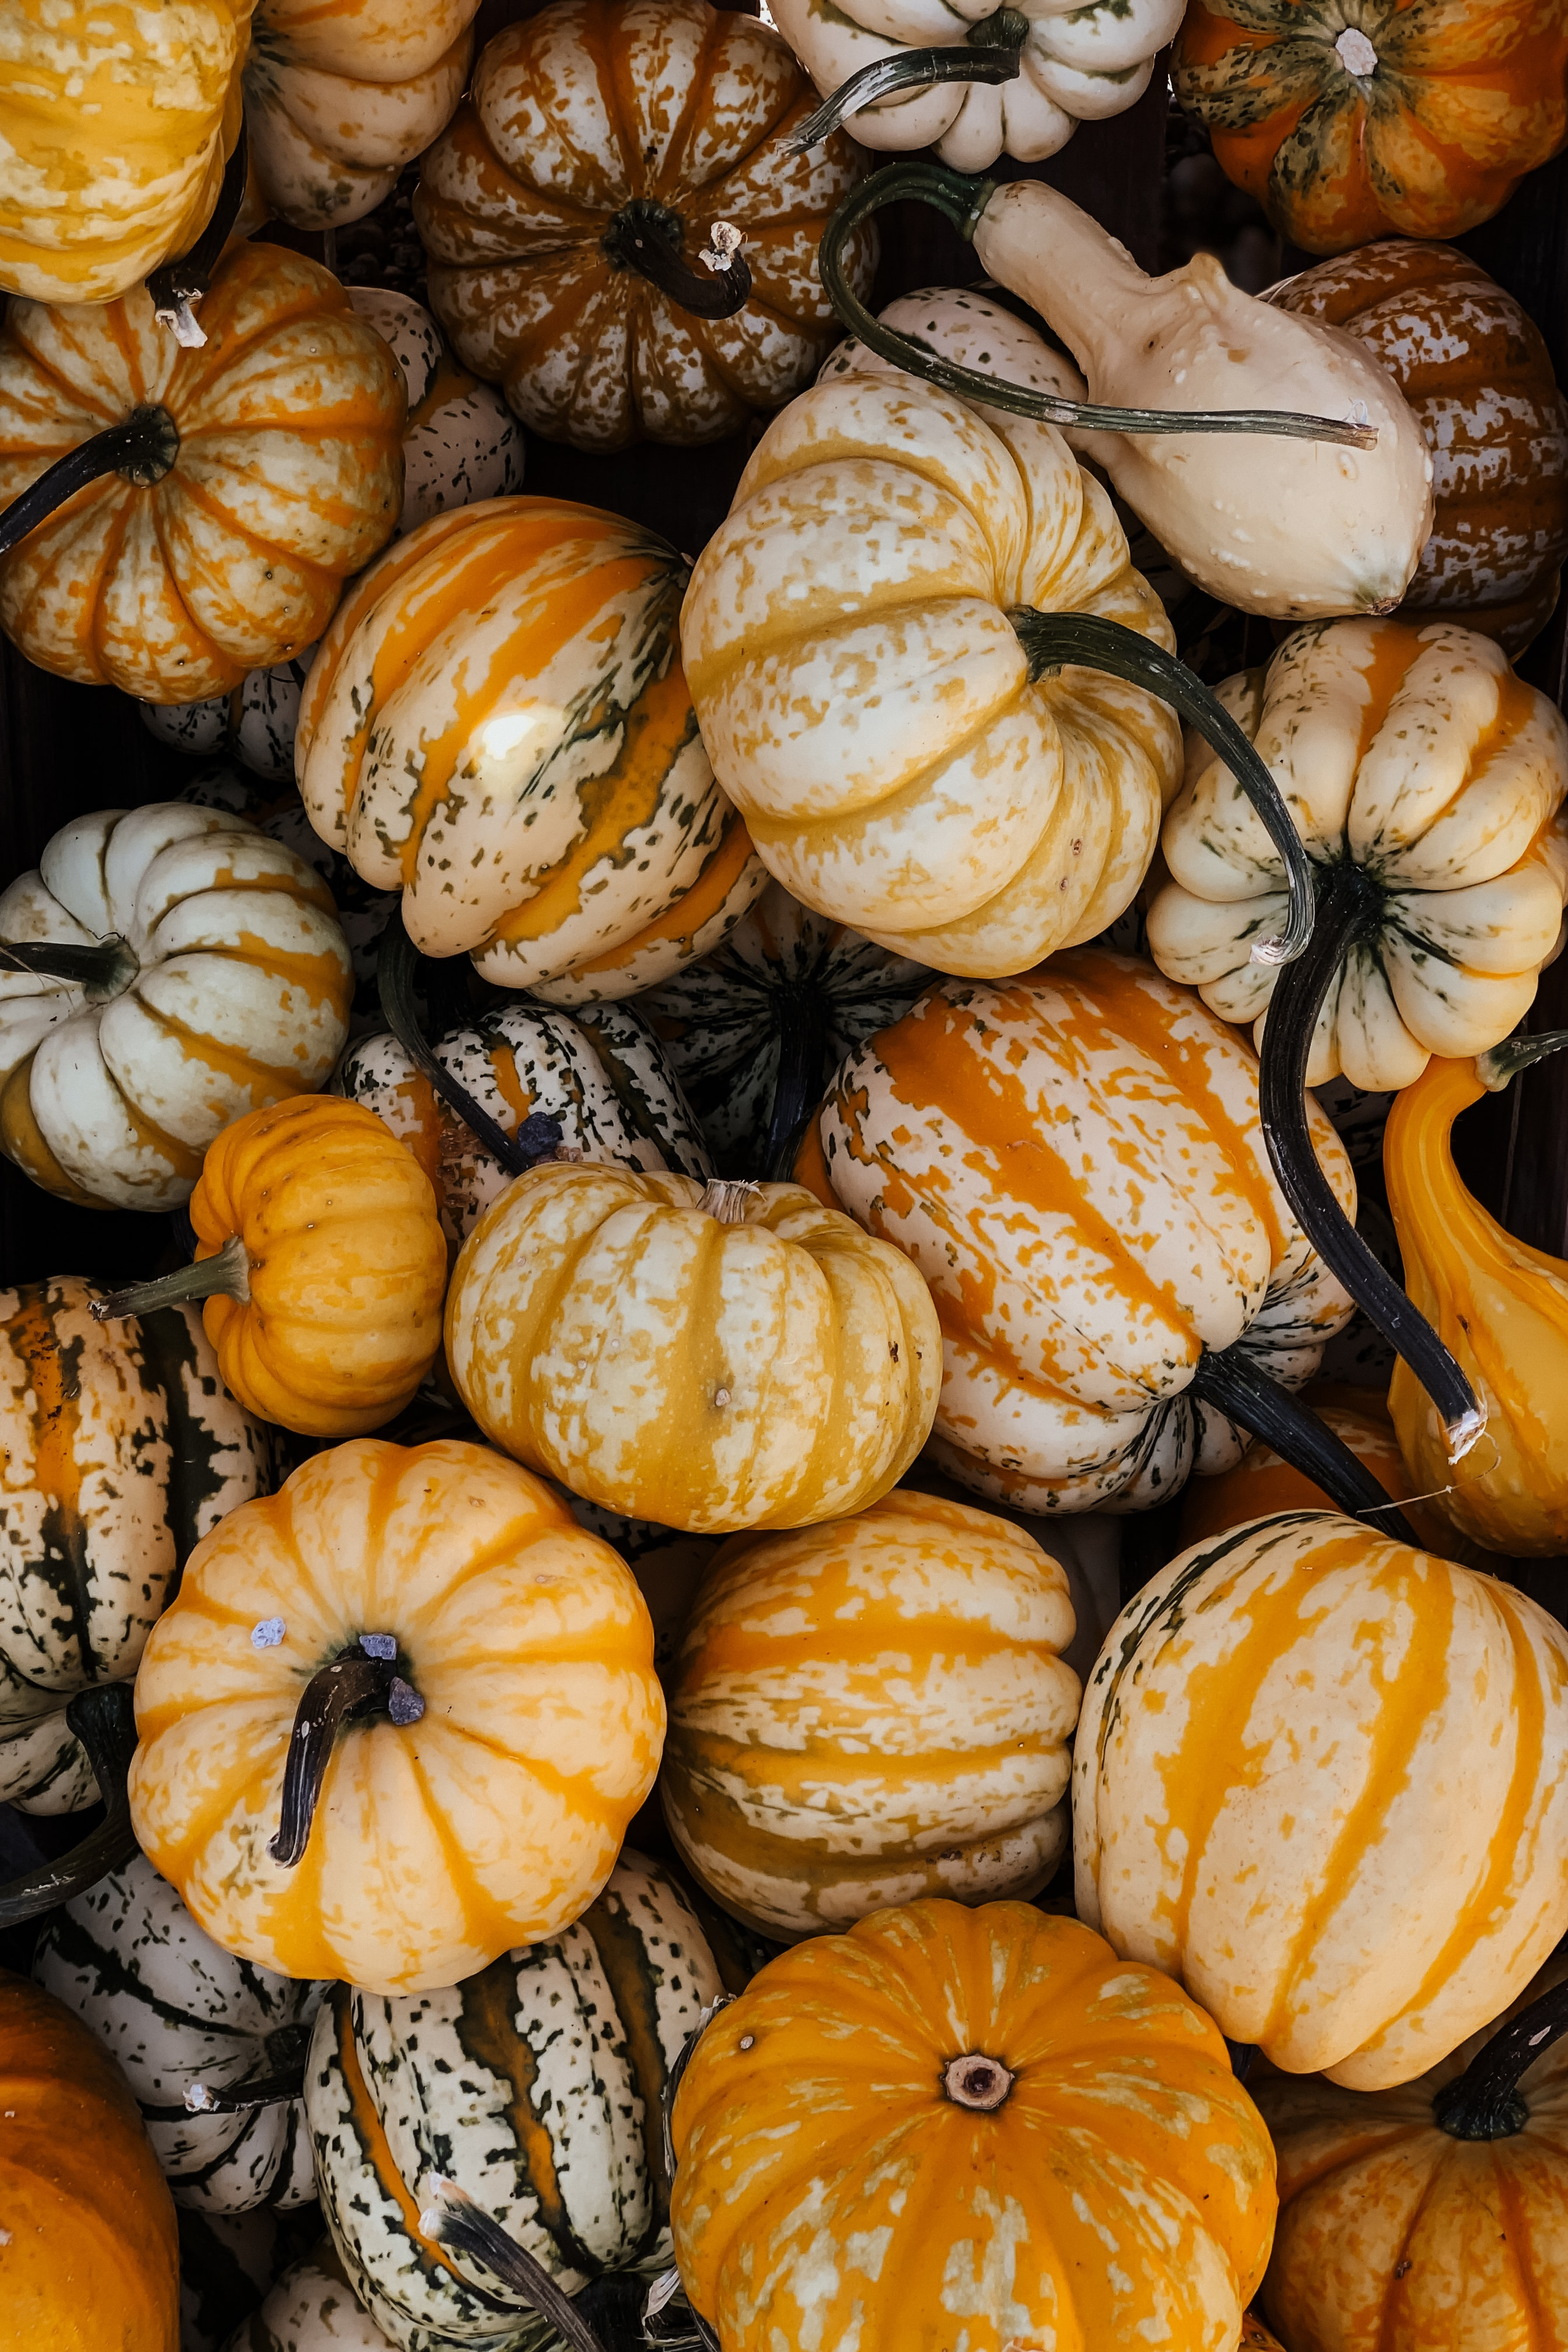 81701 download wallpaper Food, Pumpkin, Vegetable, Autumn, Halloween screensavers and pictures for free